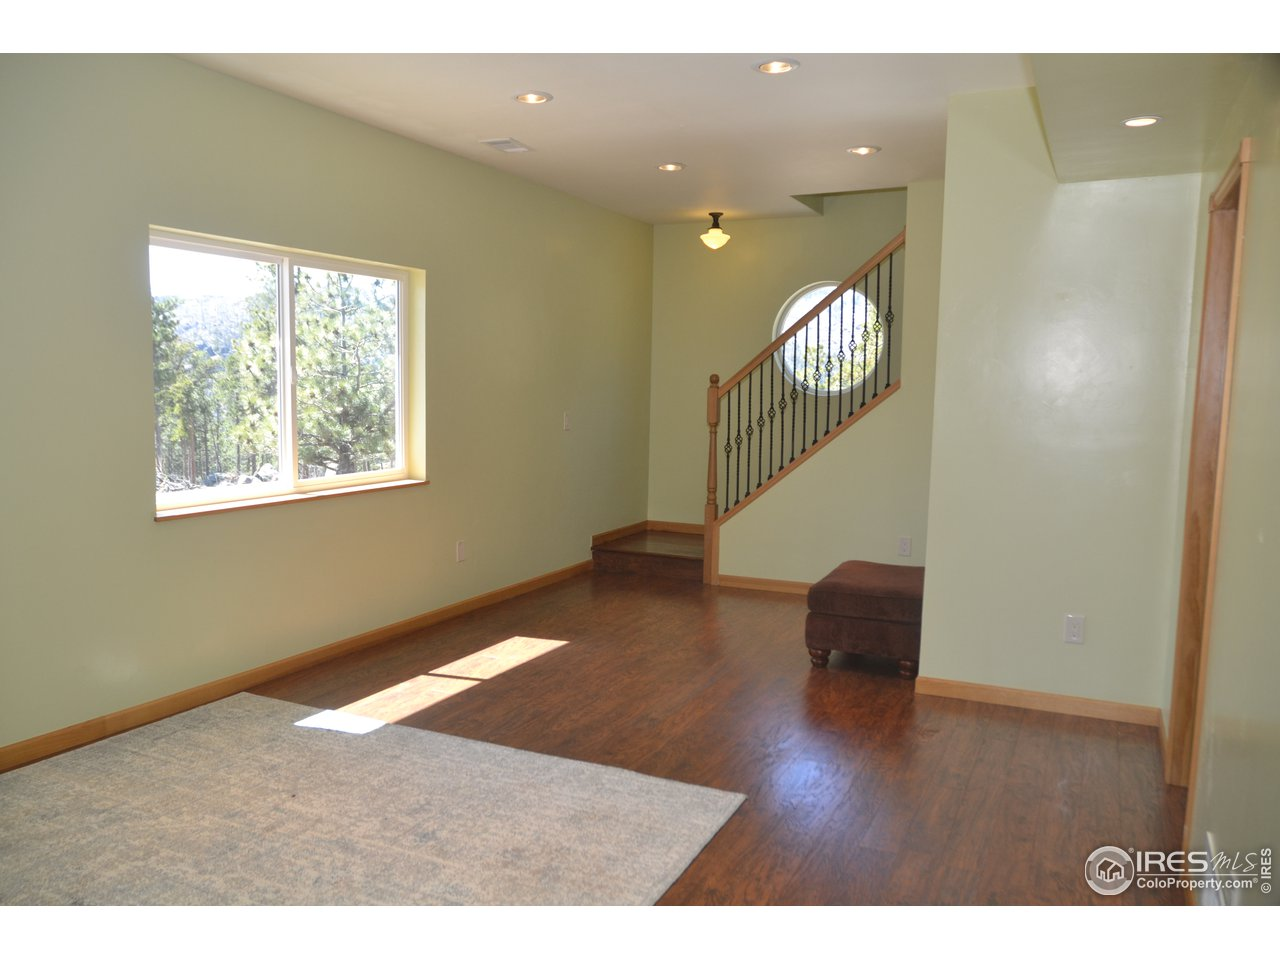 Lower Living/Family Room